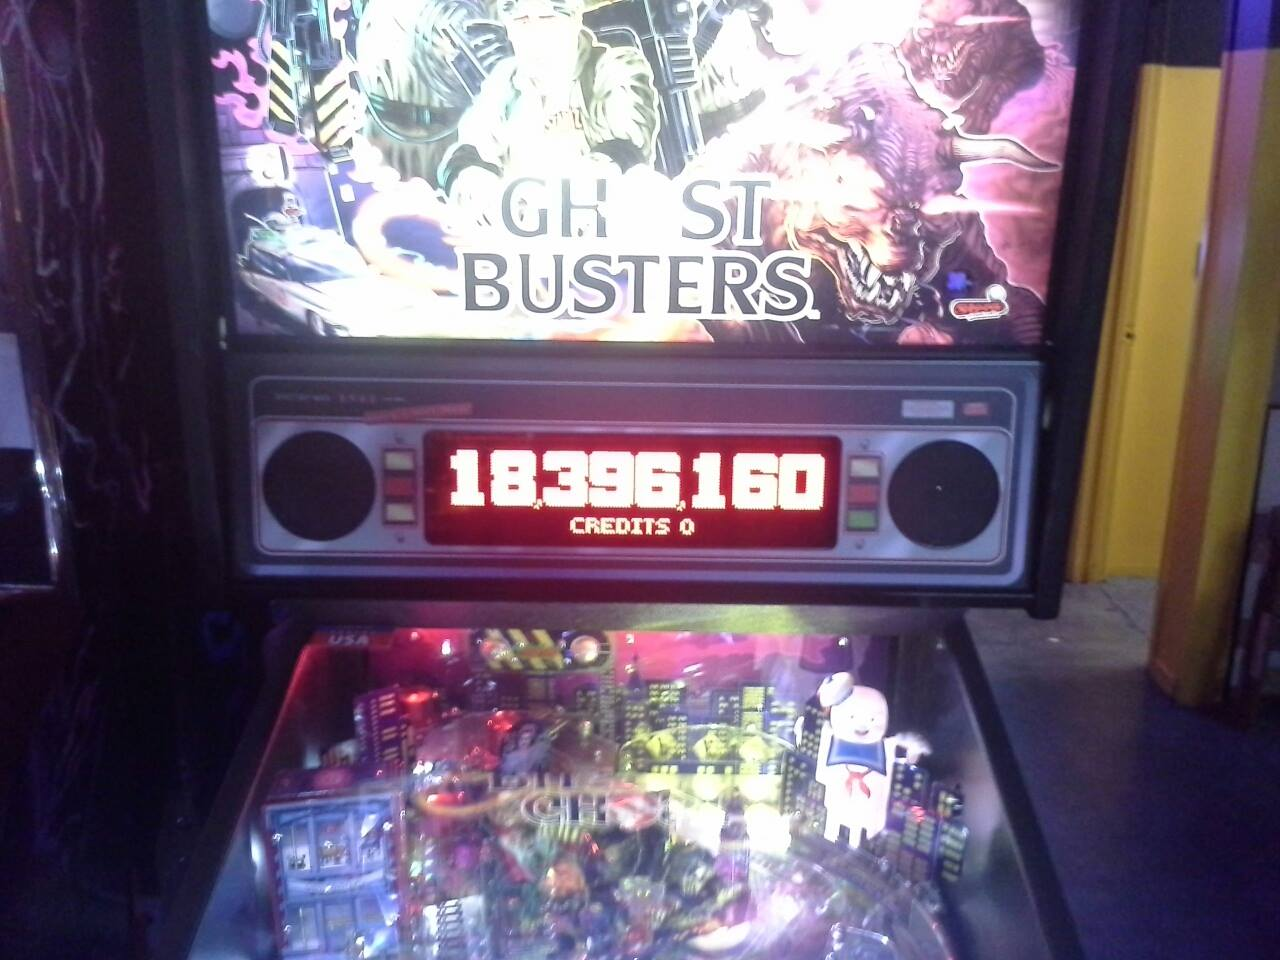 Ghostbusters 18,396,160 points